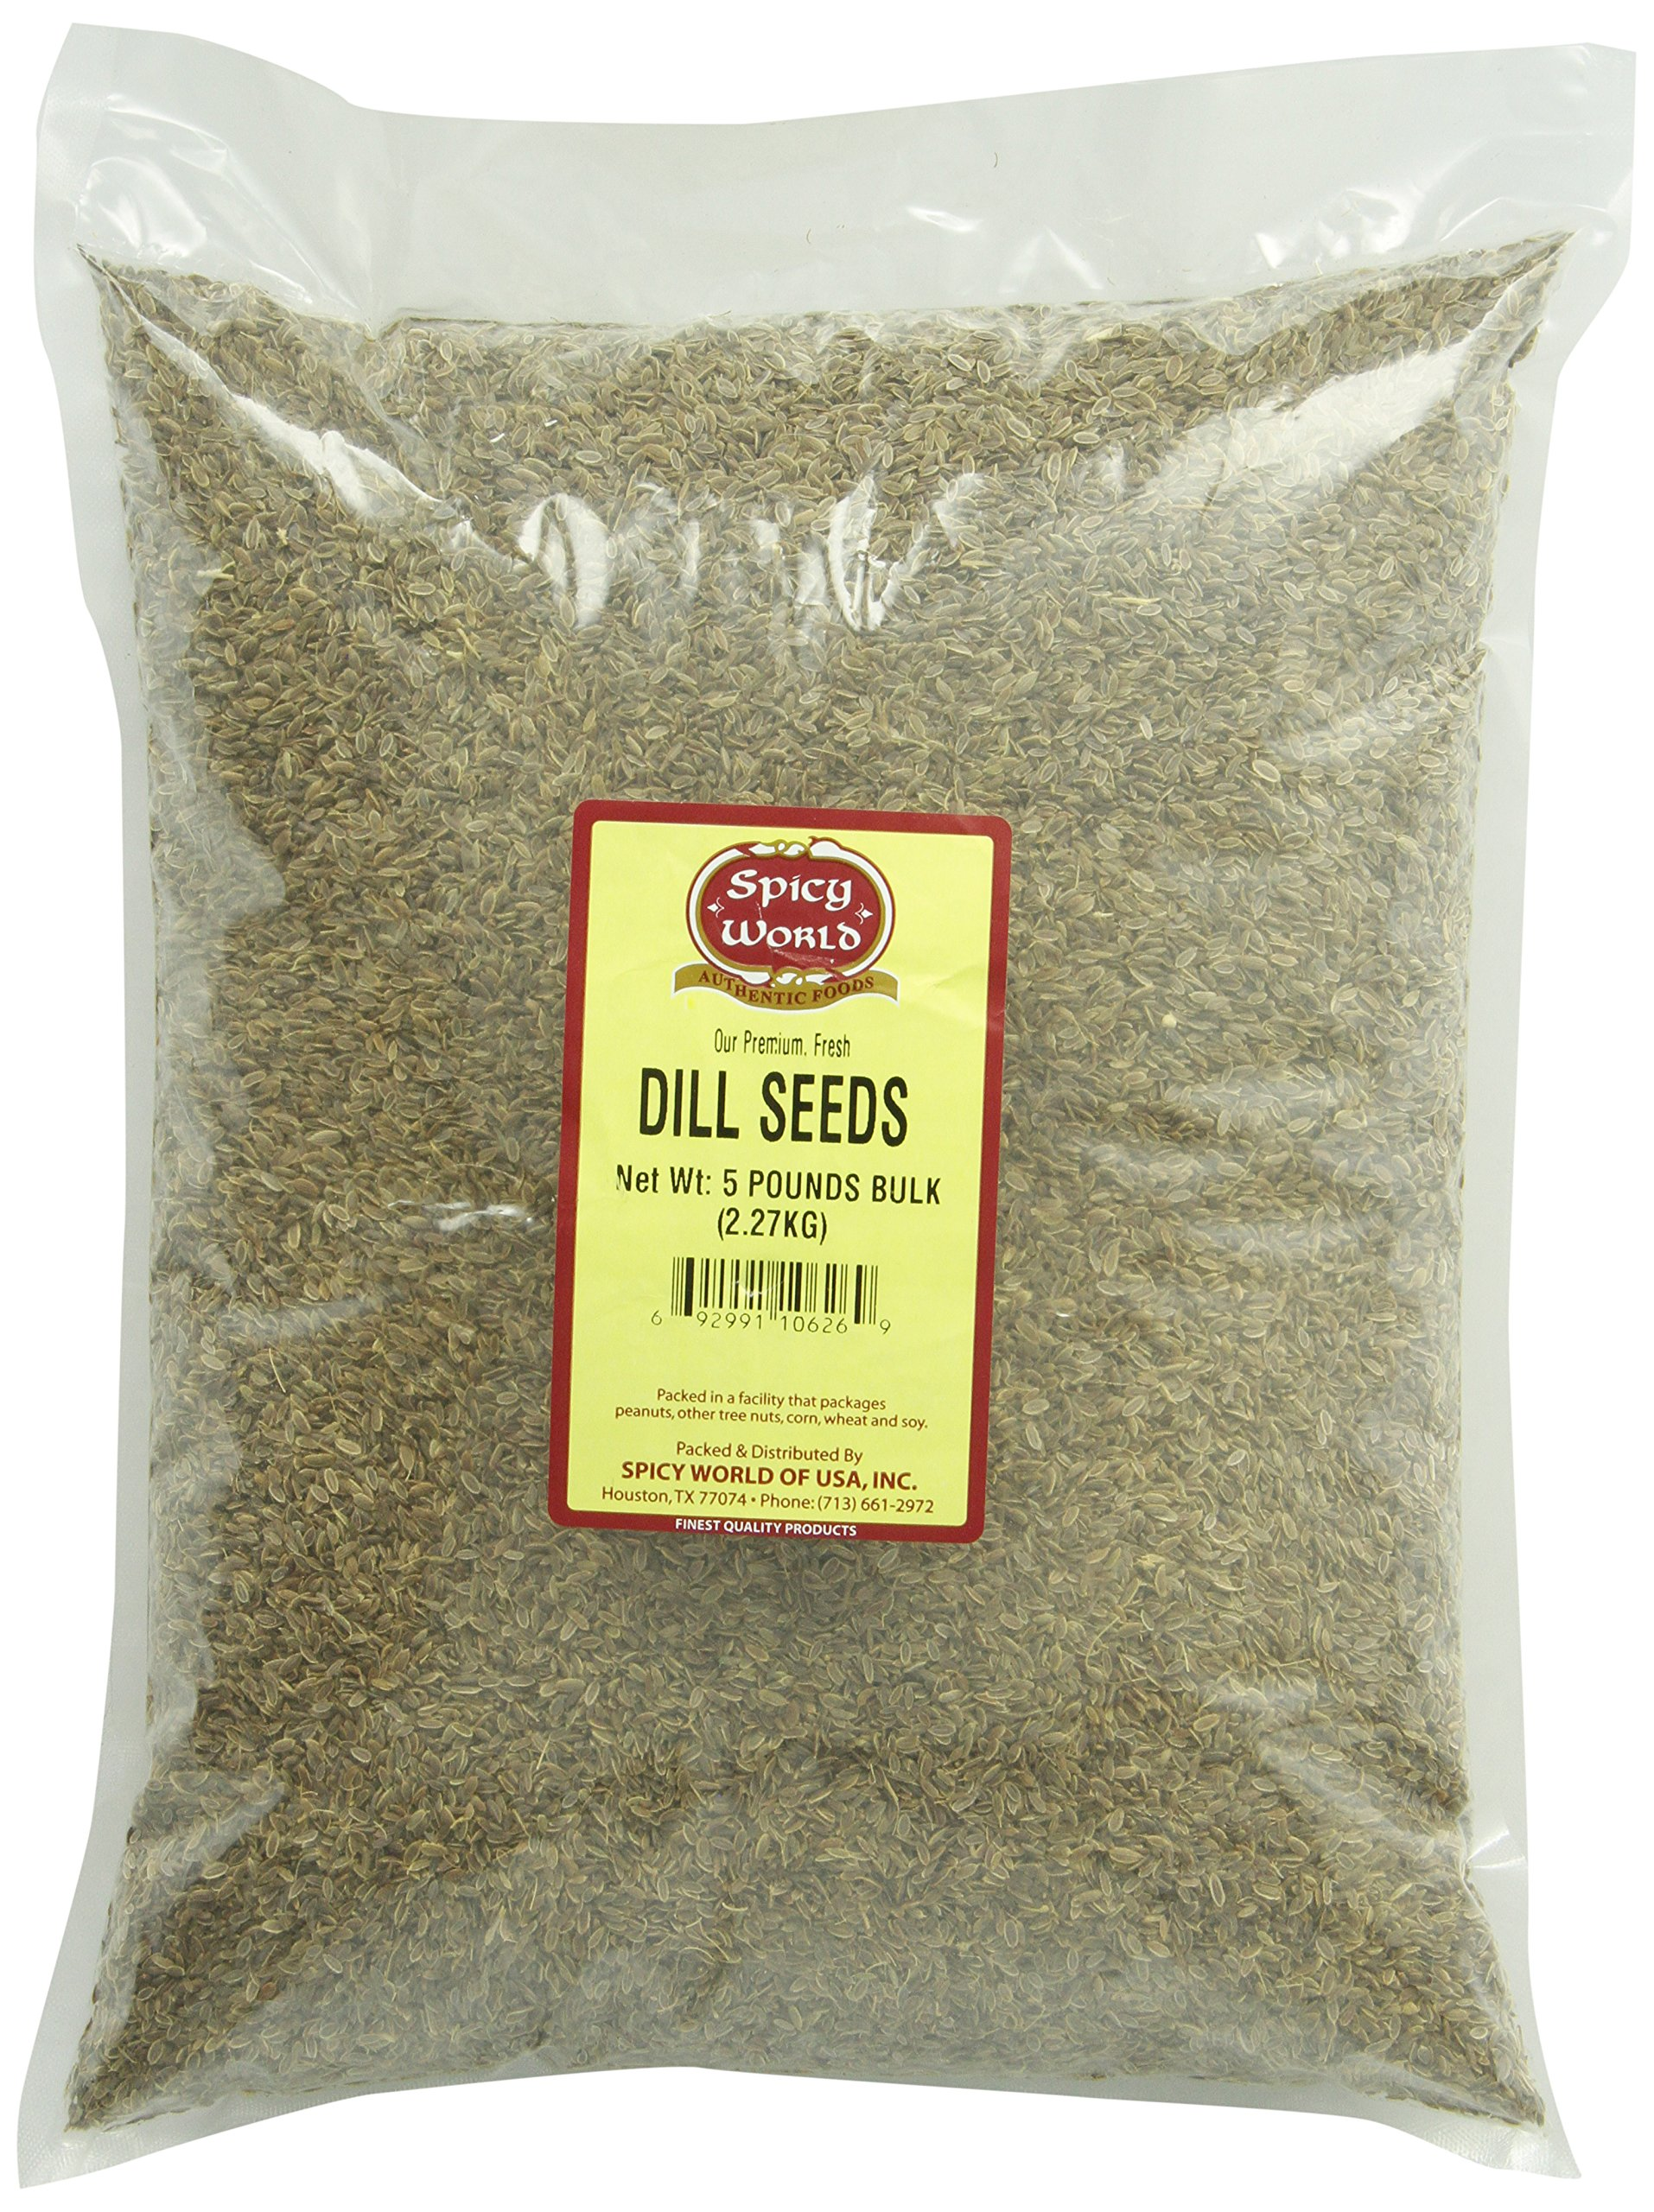 Spicy World Dill Seeds Bulk, 5-Pounds by Spicy World